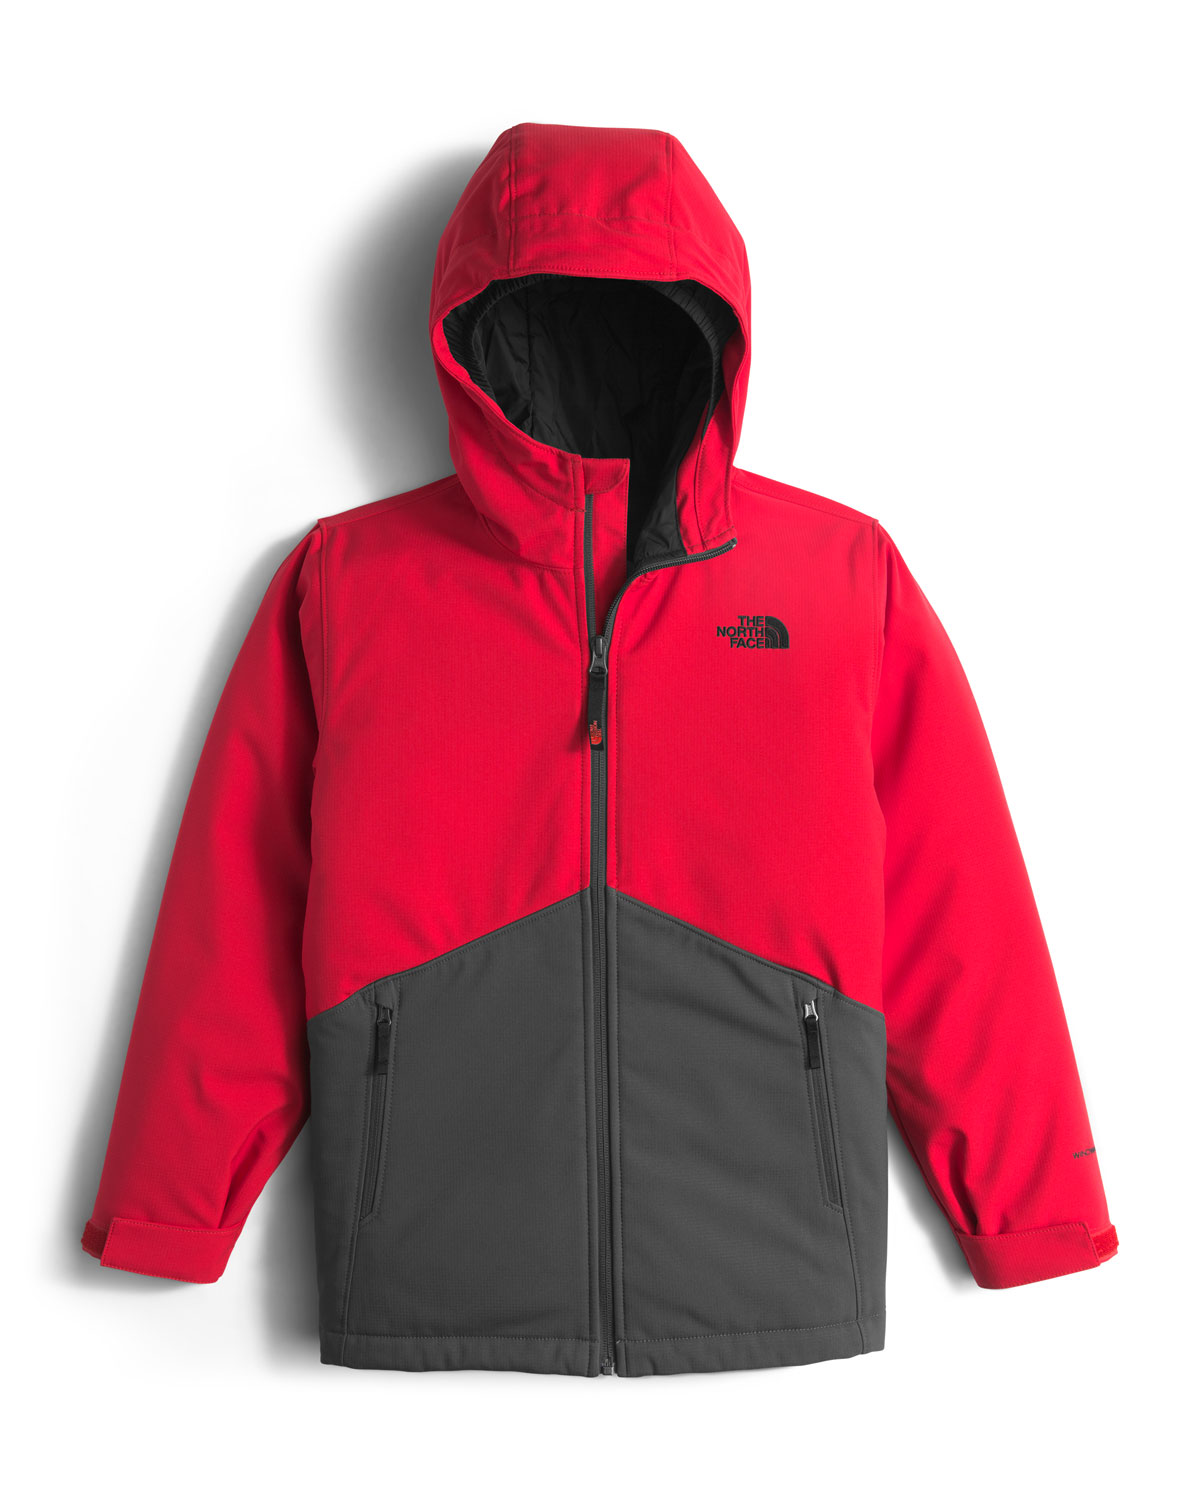 The North Face Apex Elevation Colorblock Jacket Red Black Size Xxs